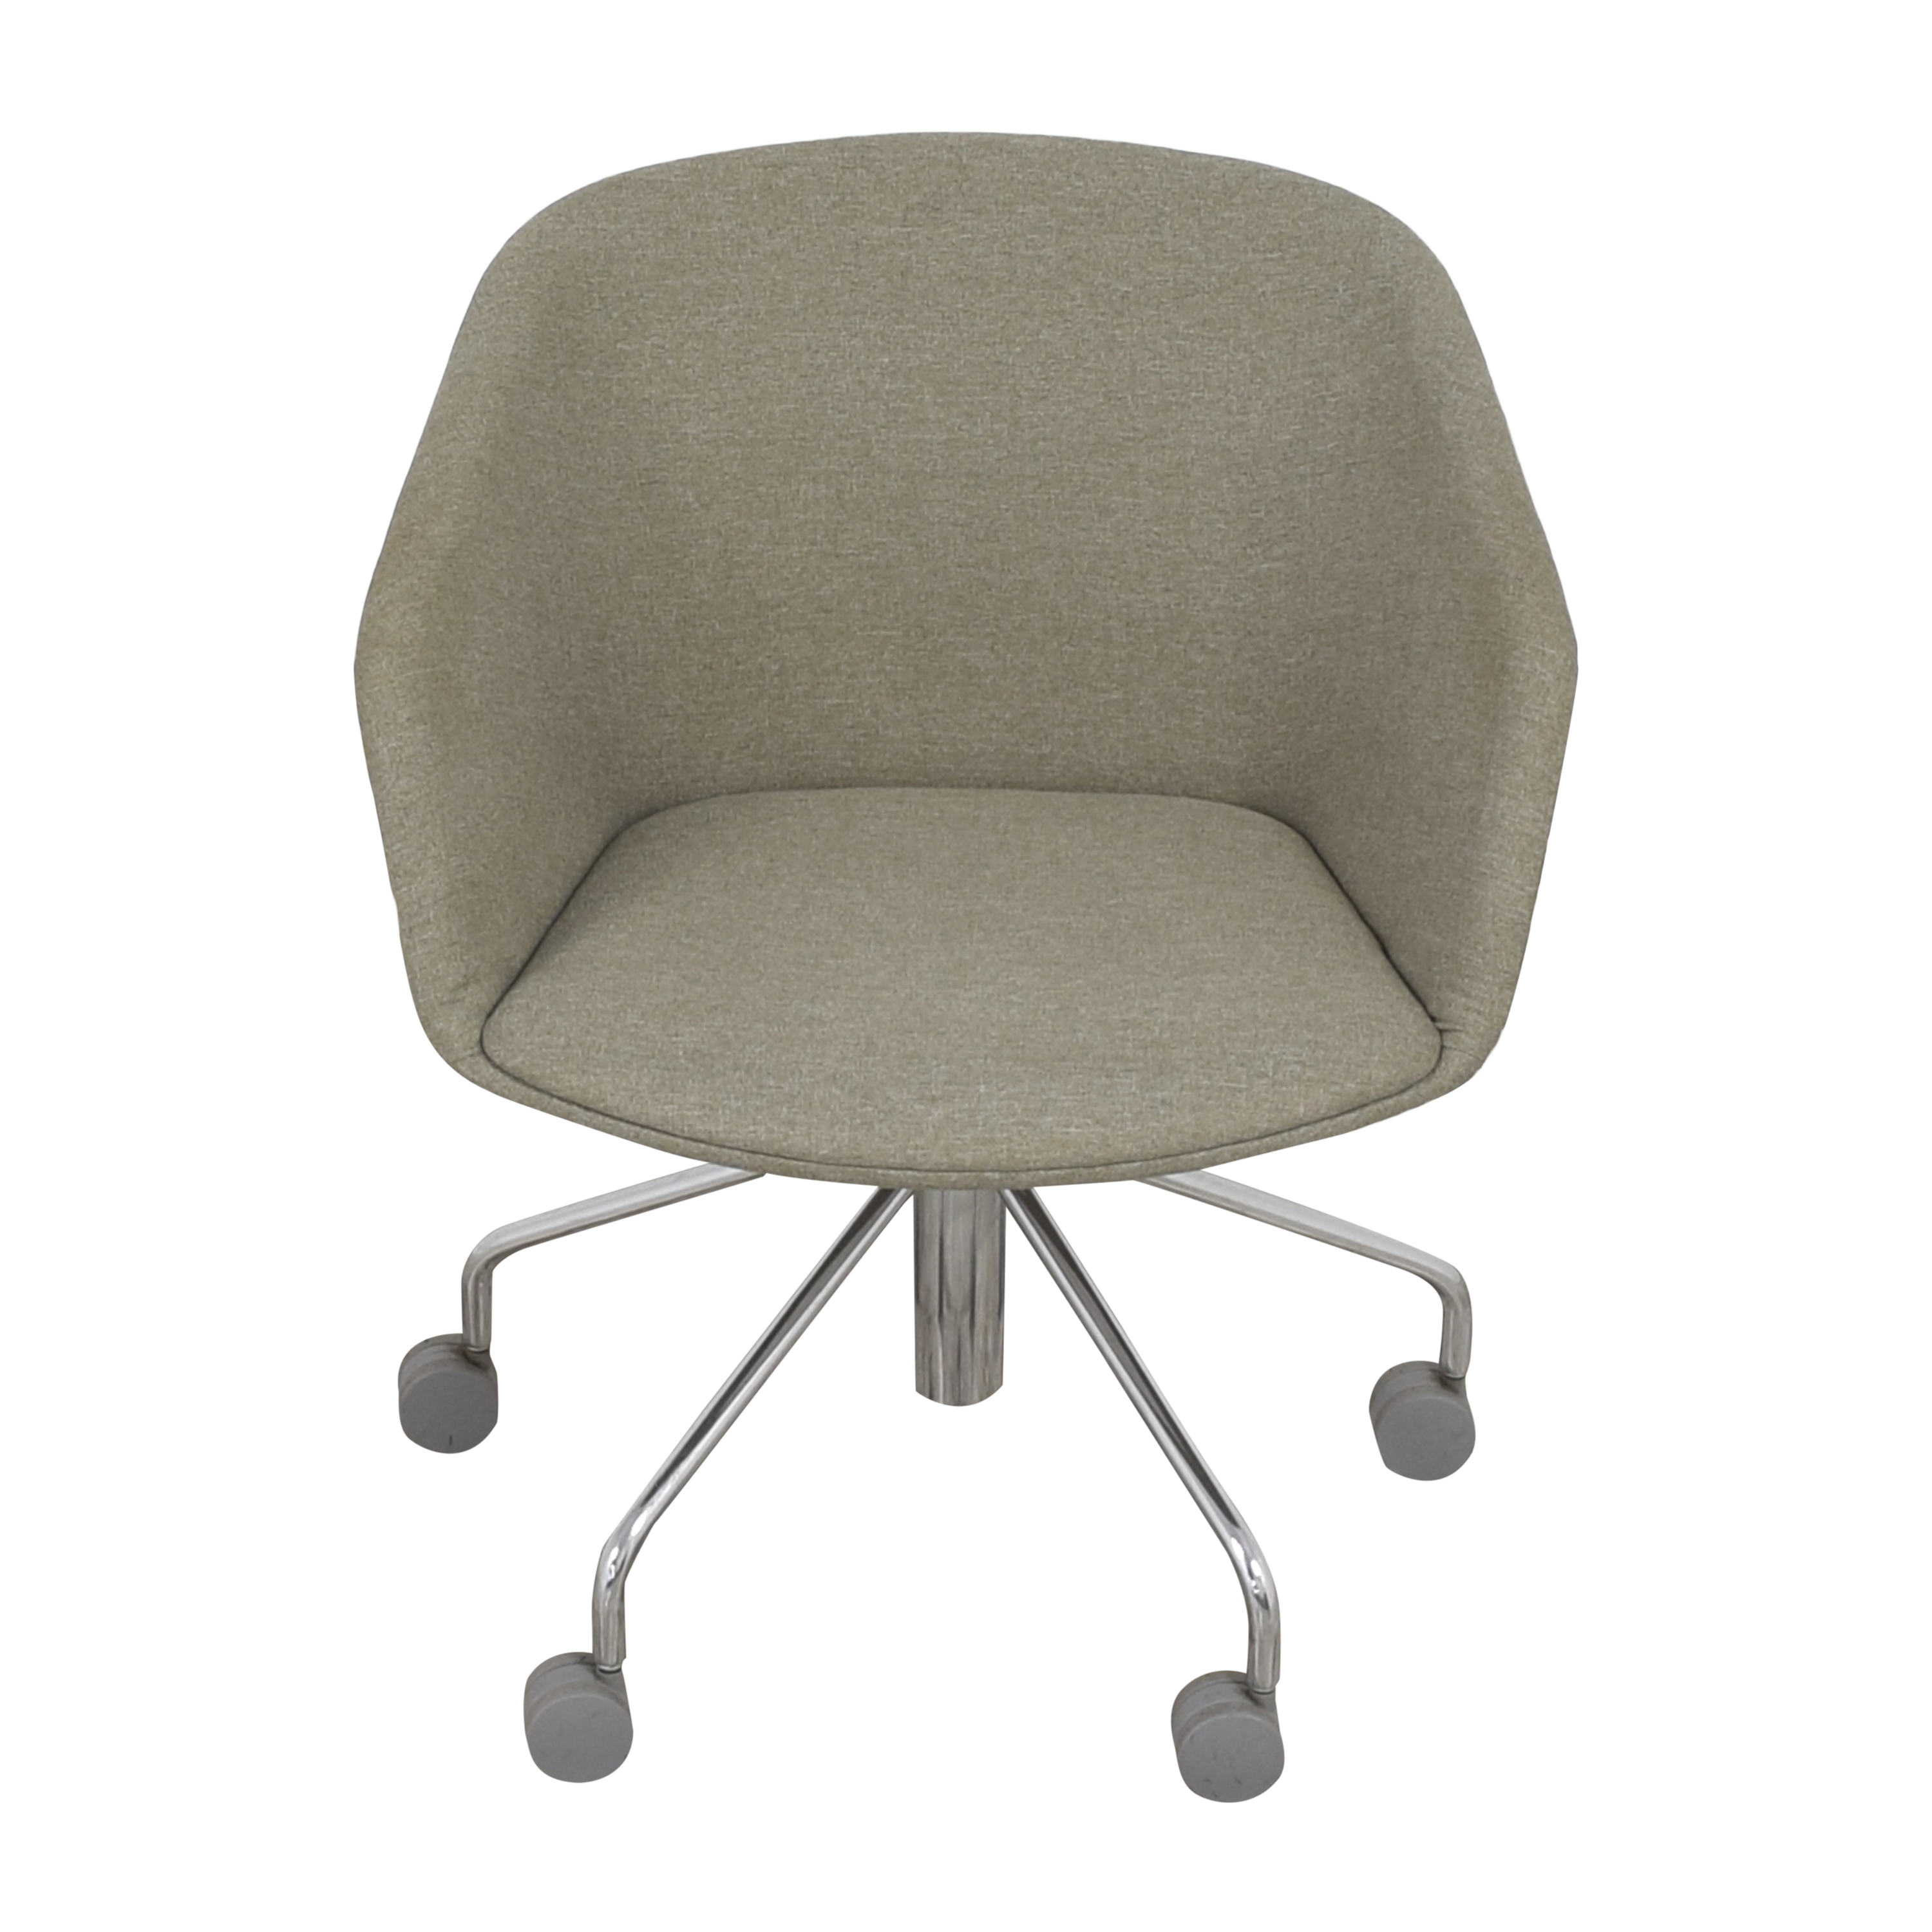 Poppin Poppin Pitch Meeting Chair